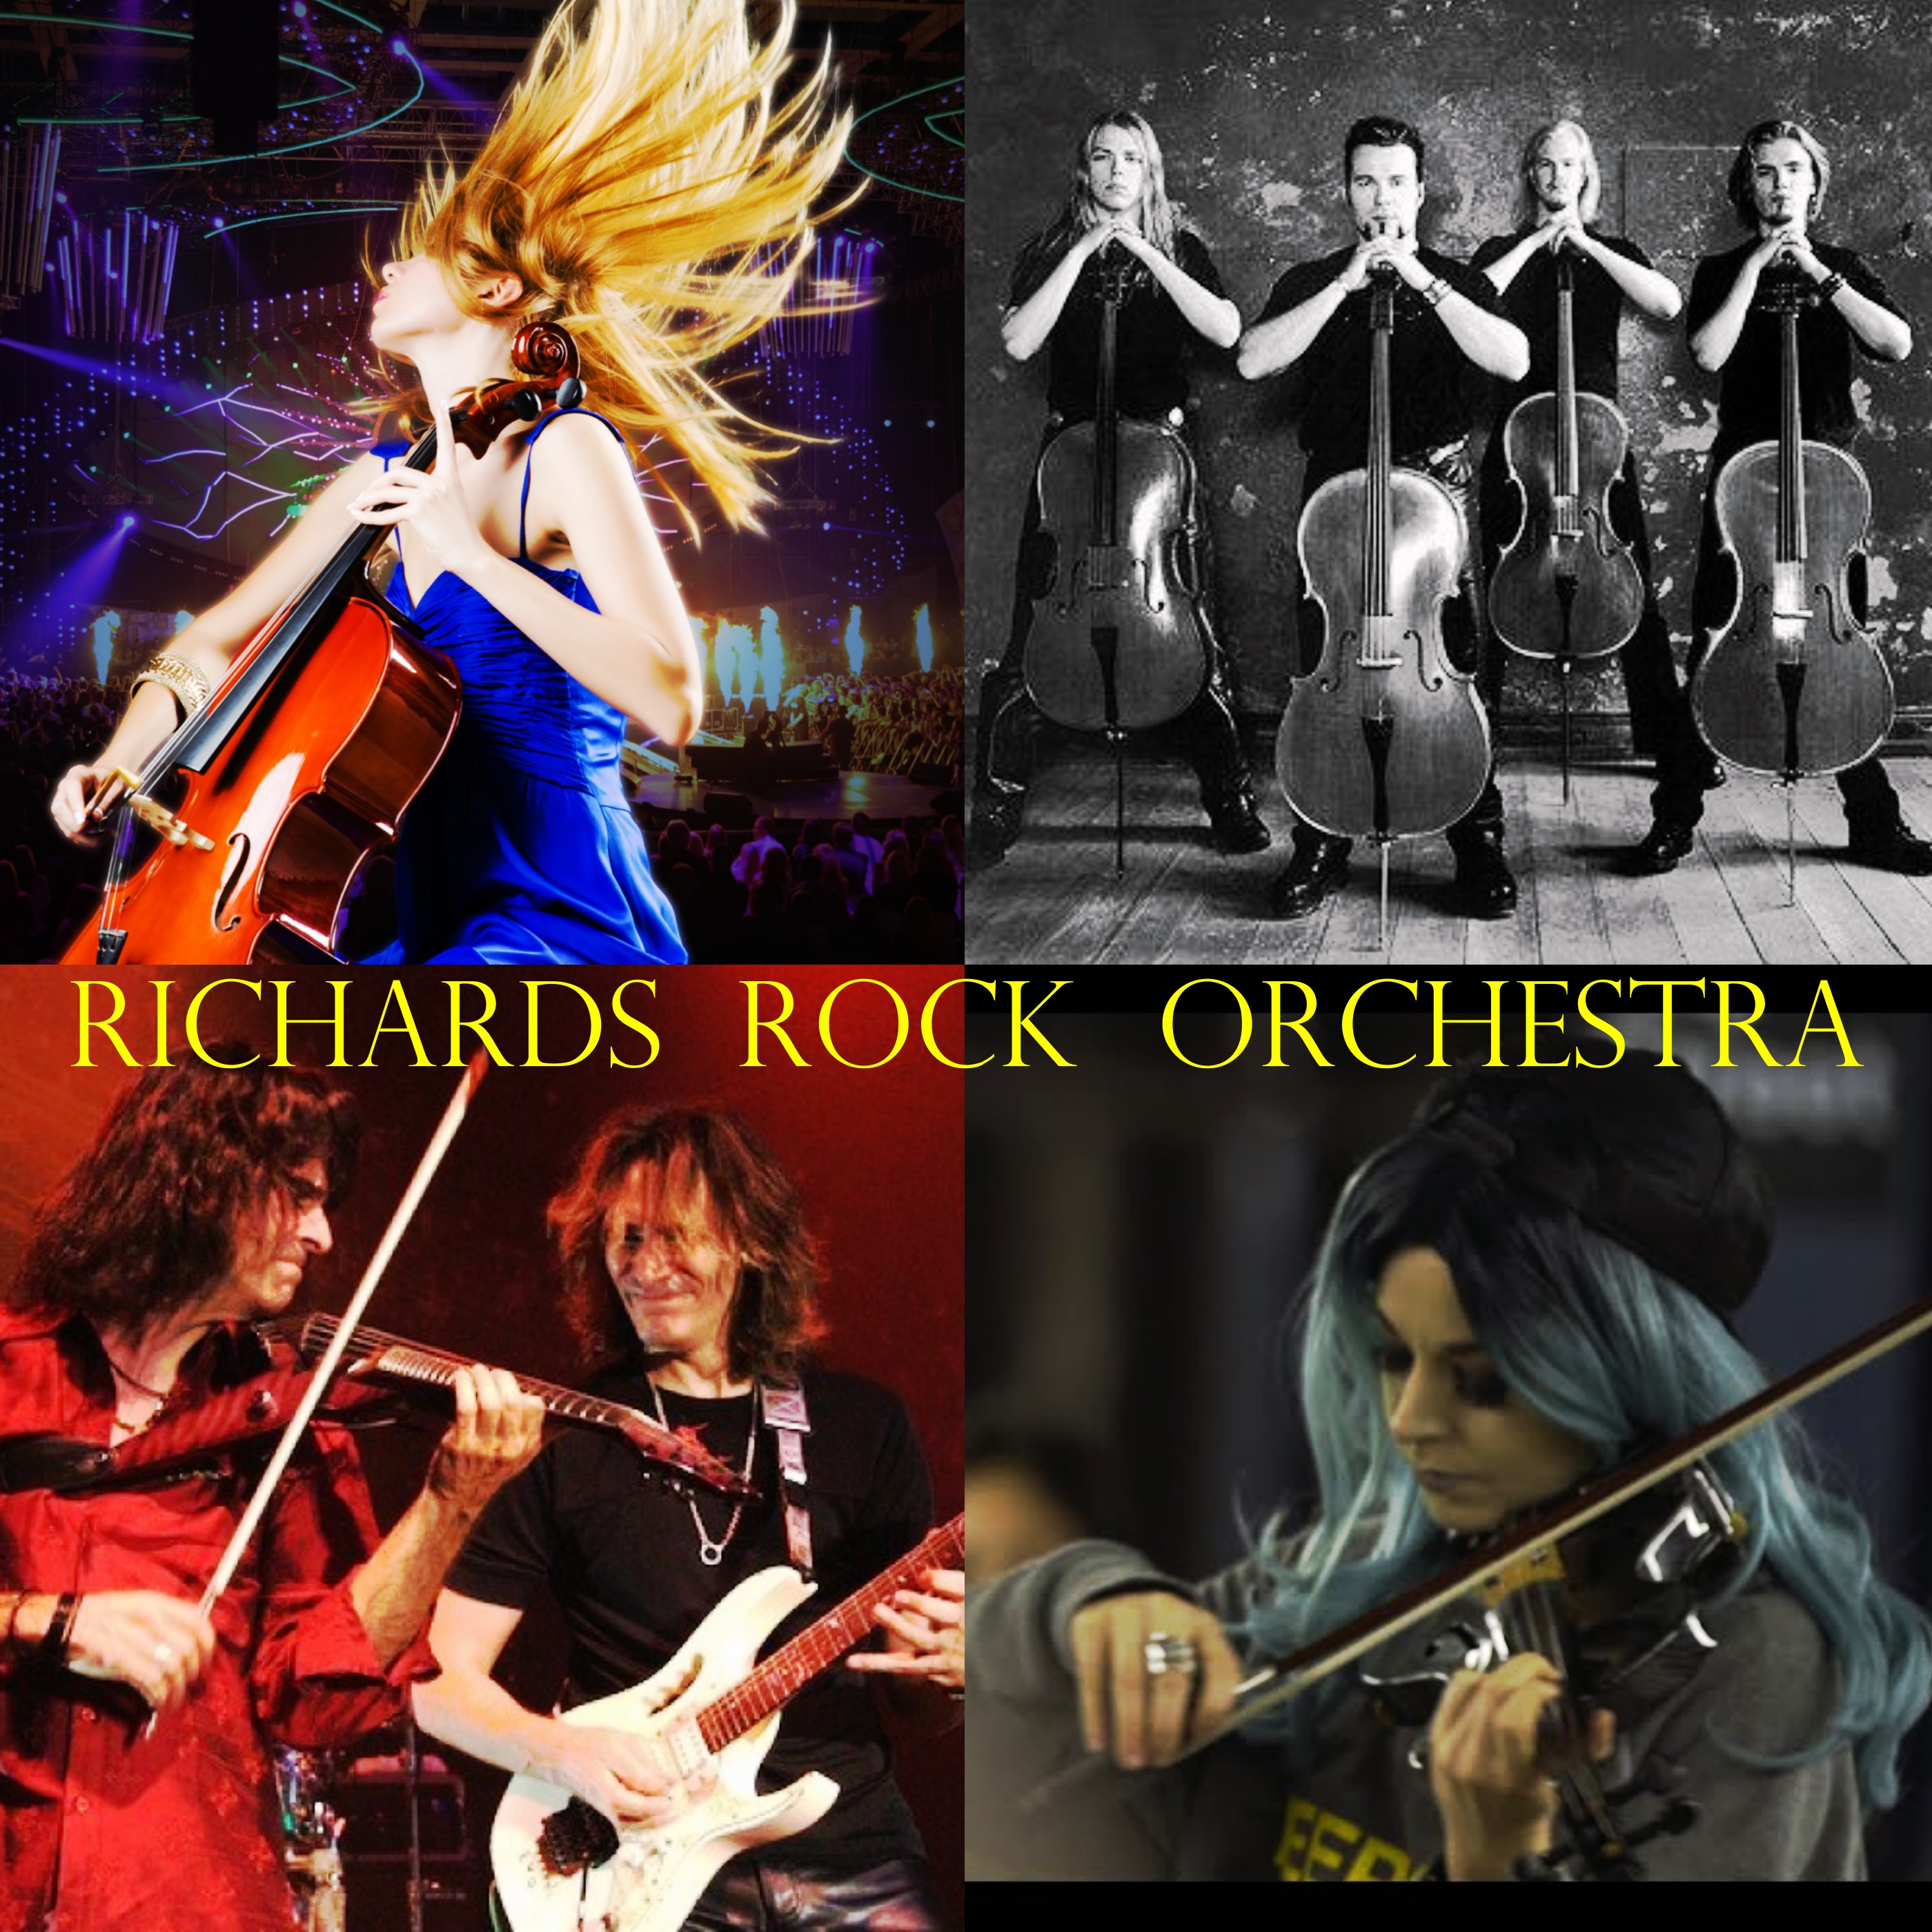 Richards Rock Orchestra